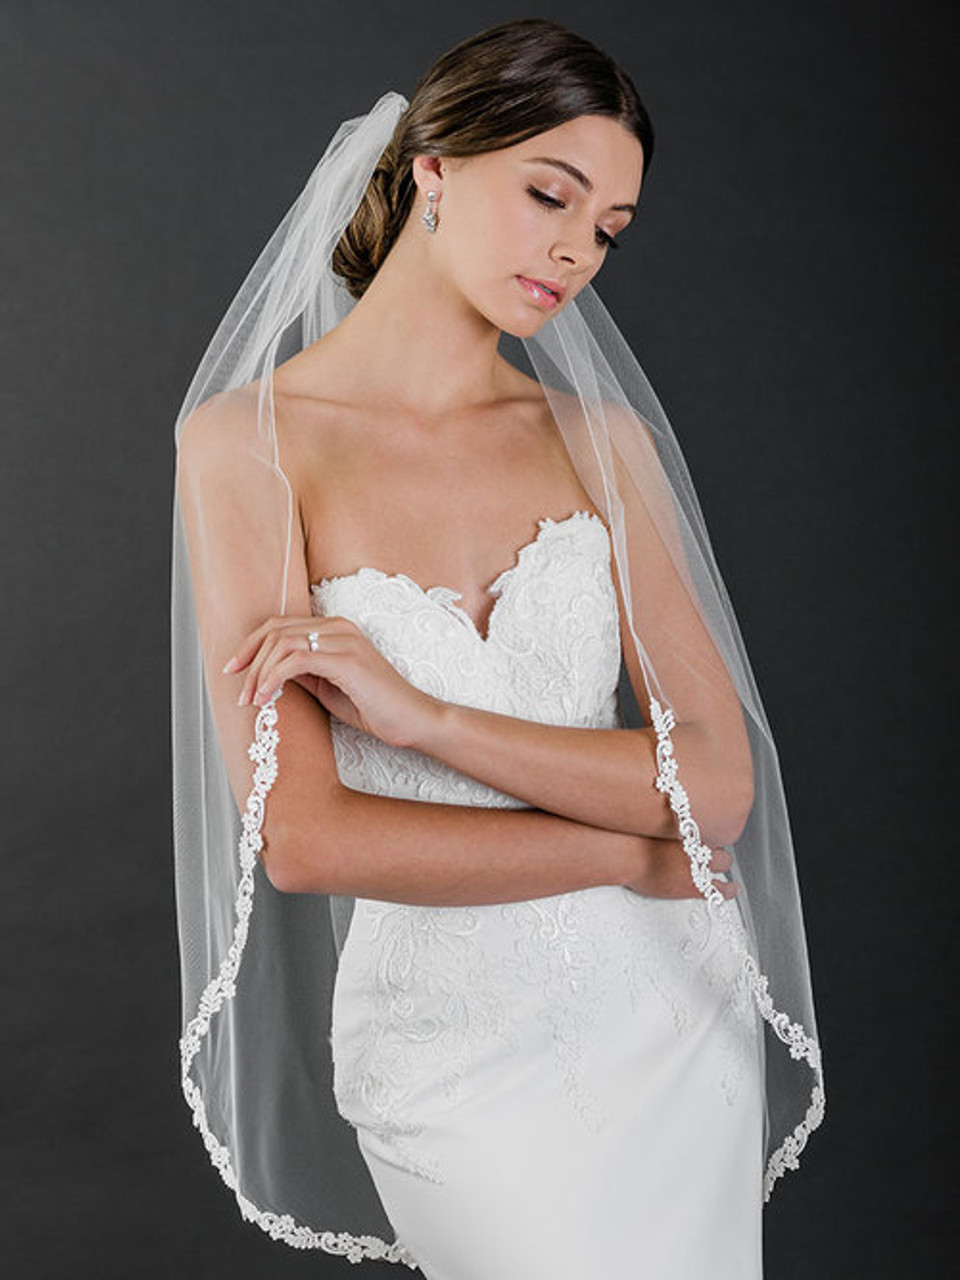 Bel Aire Bridal Veil V7507 - 1-tier fingertip veil with rolled edge and narrow Venise lace